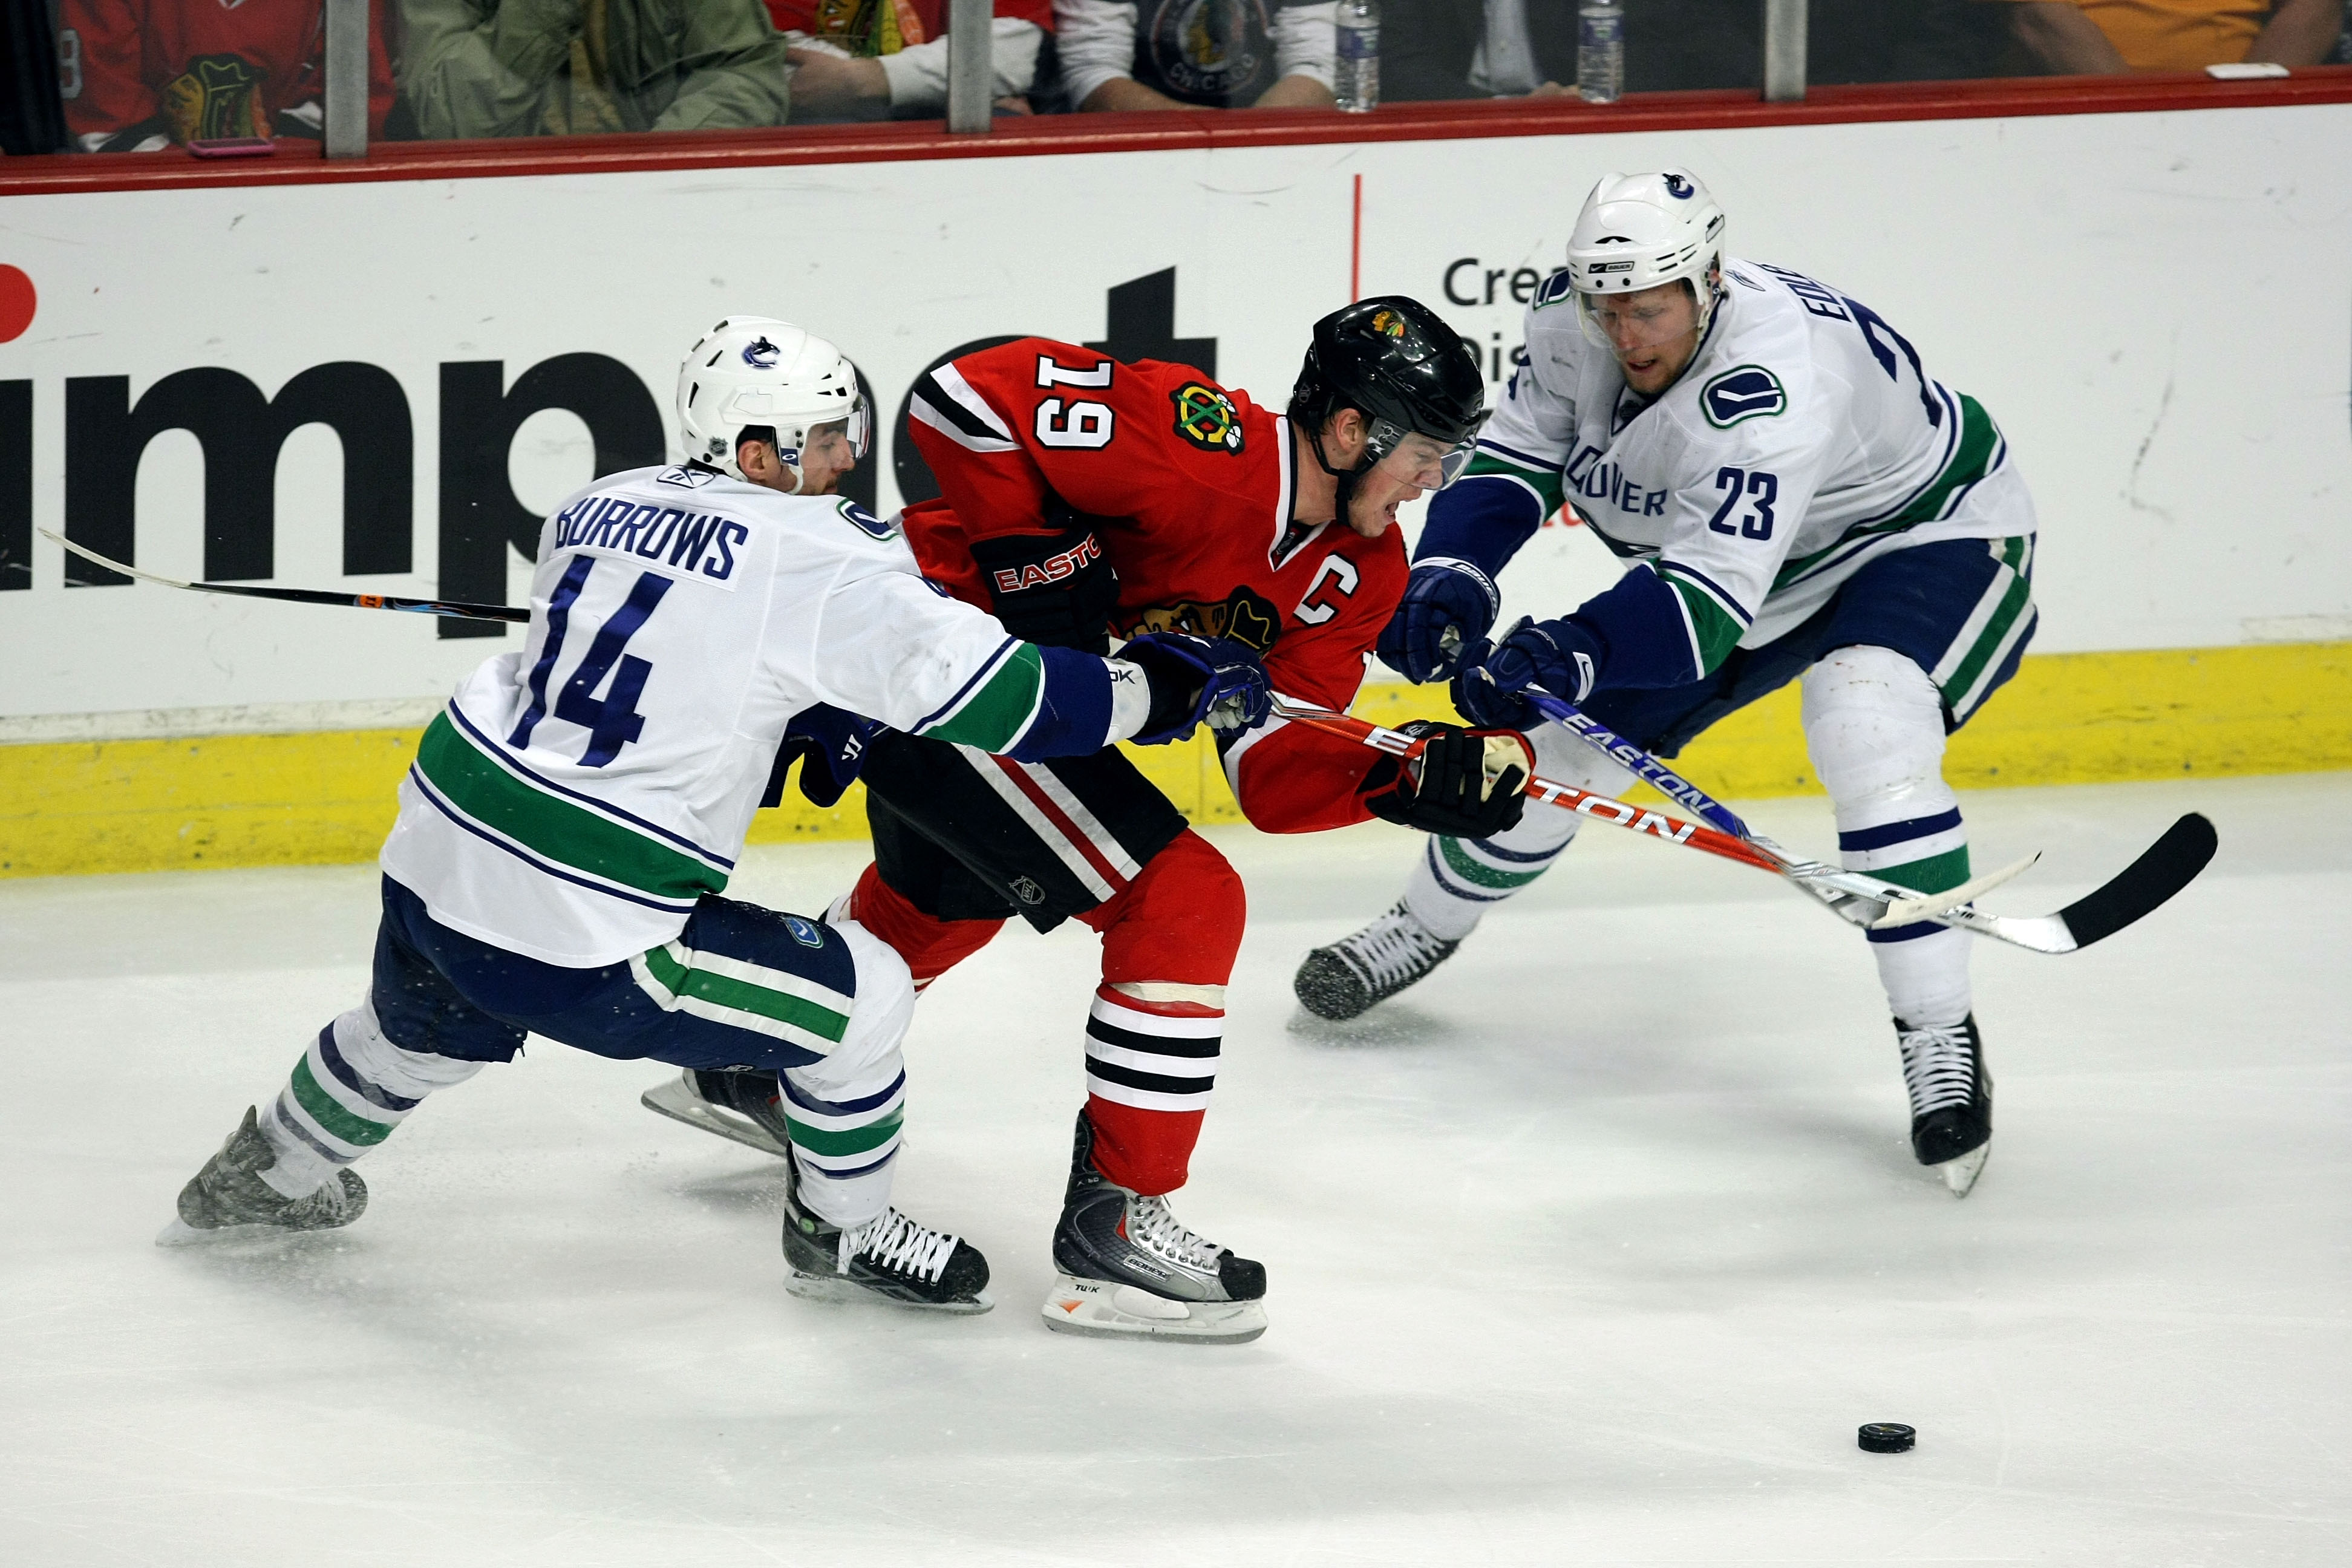 CHICAGO - MAY 11:  Jonathan Toews #19 of the Chicago Blackhawks fights for the puck against Alex Burrows #14 and Alexander Edler #23 of the Vancouver Canucks during Game Six of the Western Conference Semifinal Round of the 2009 Stanley Cup Playoffs on May